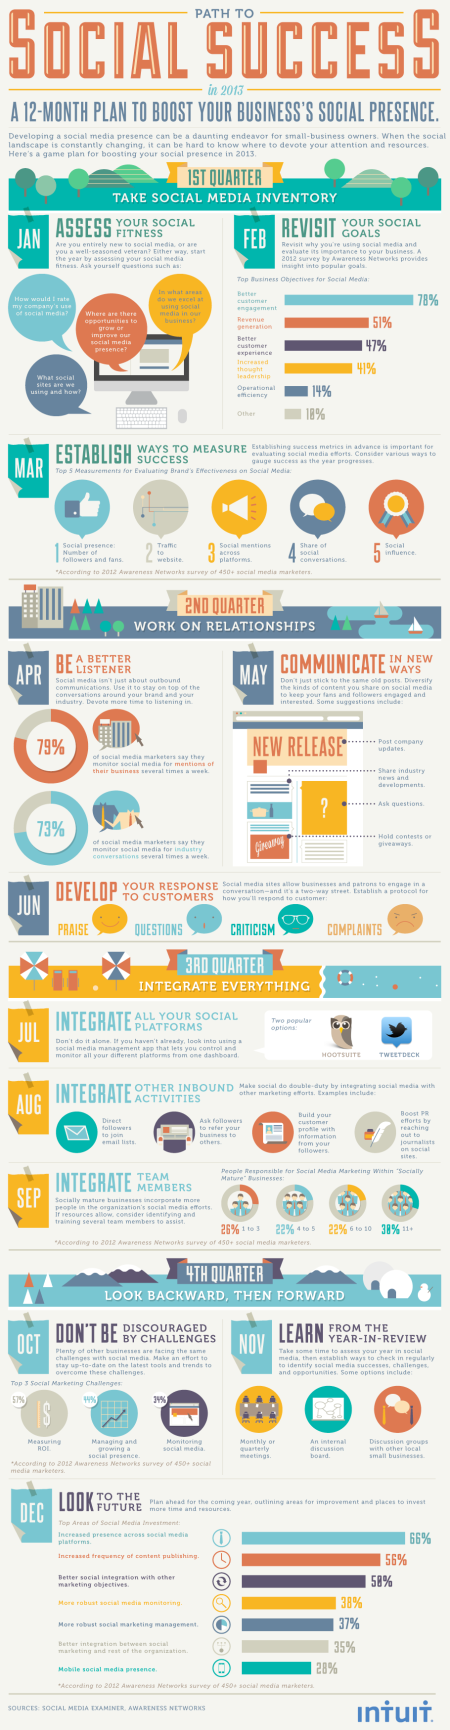 Infographic for social media success